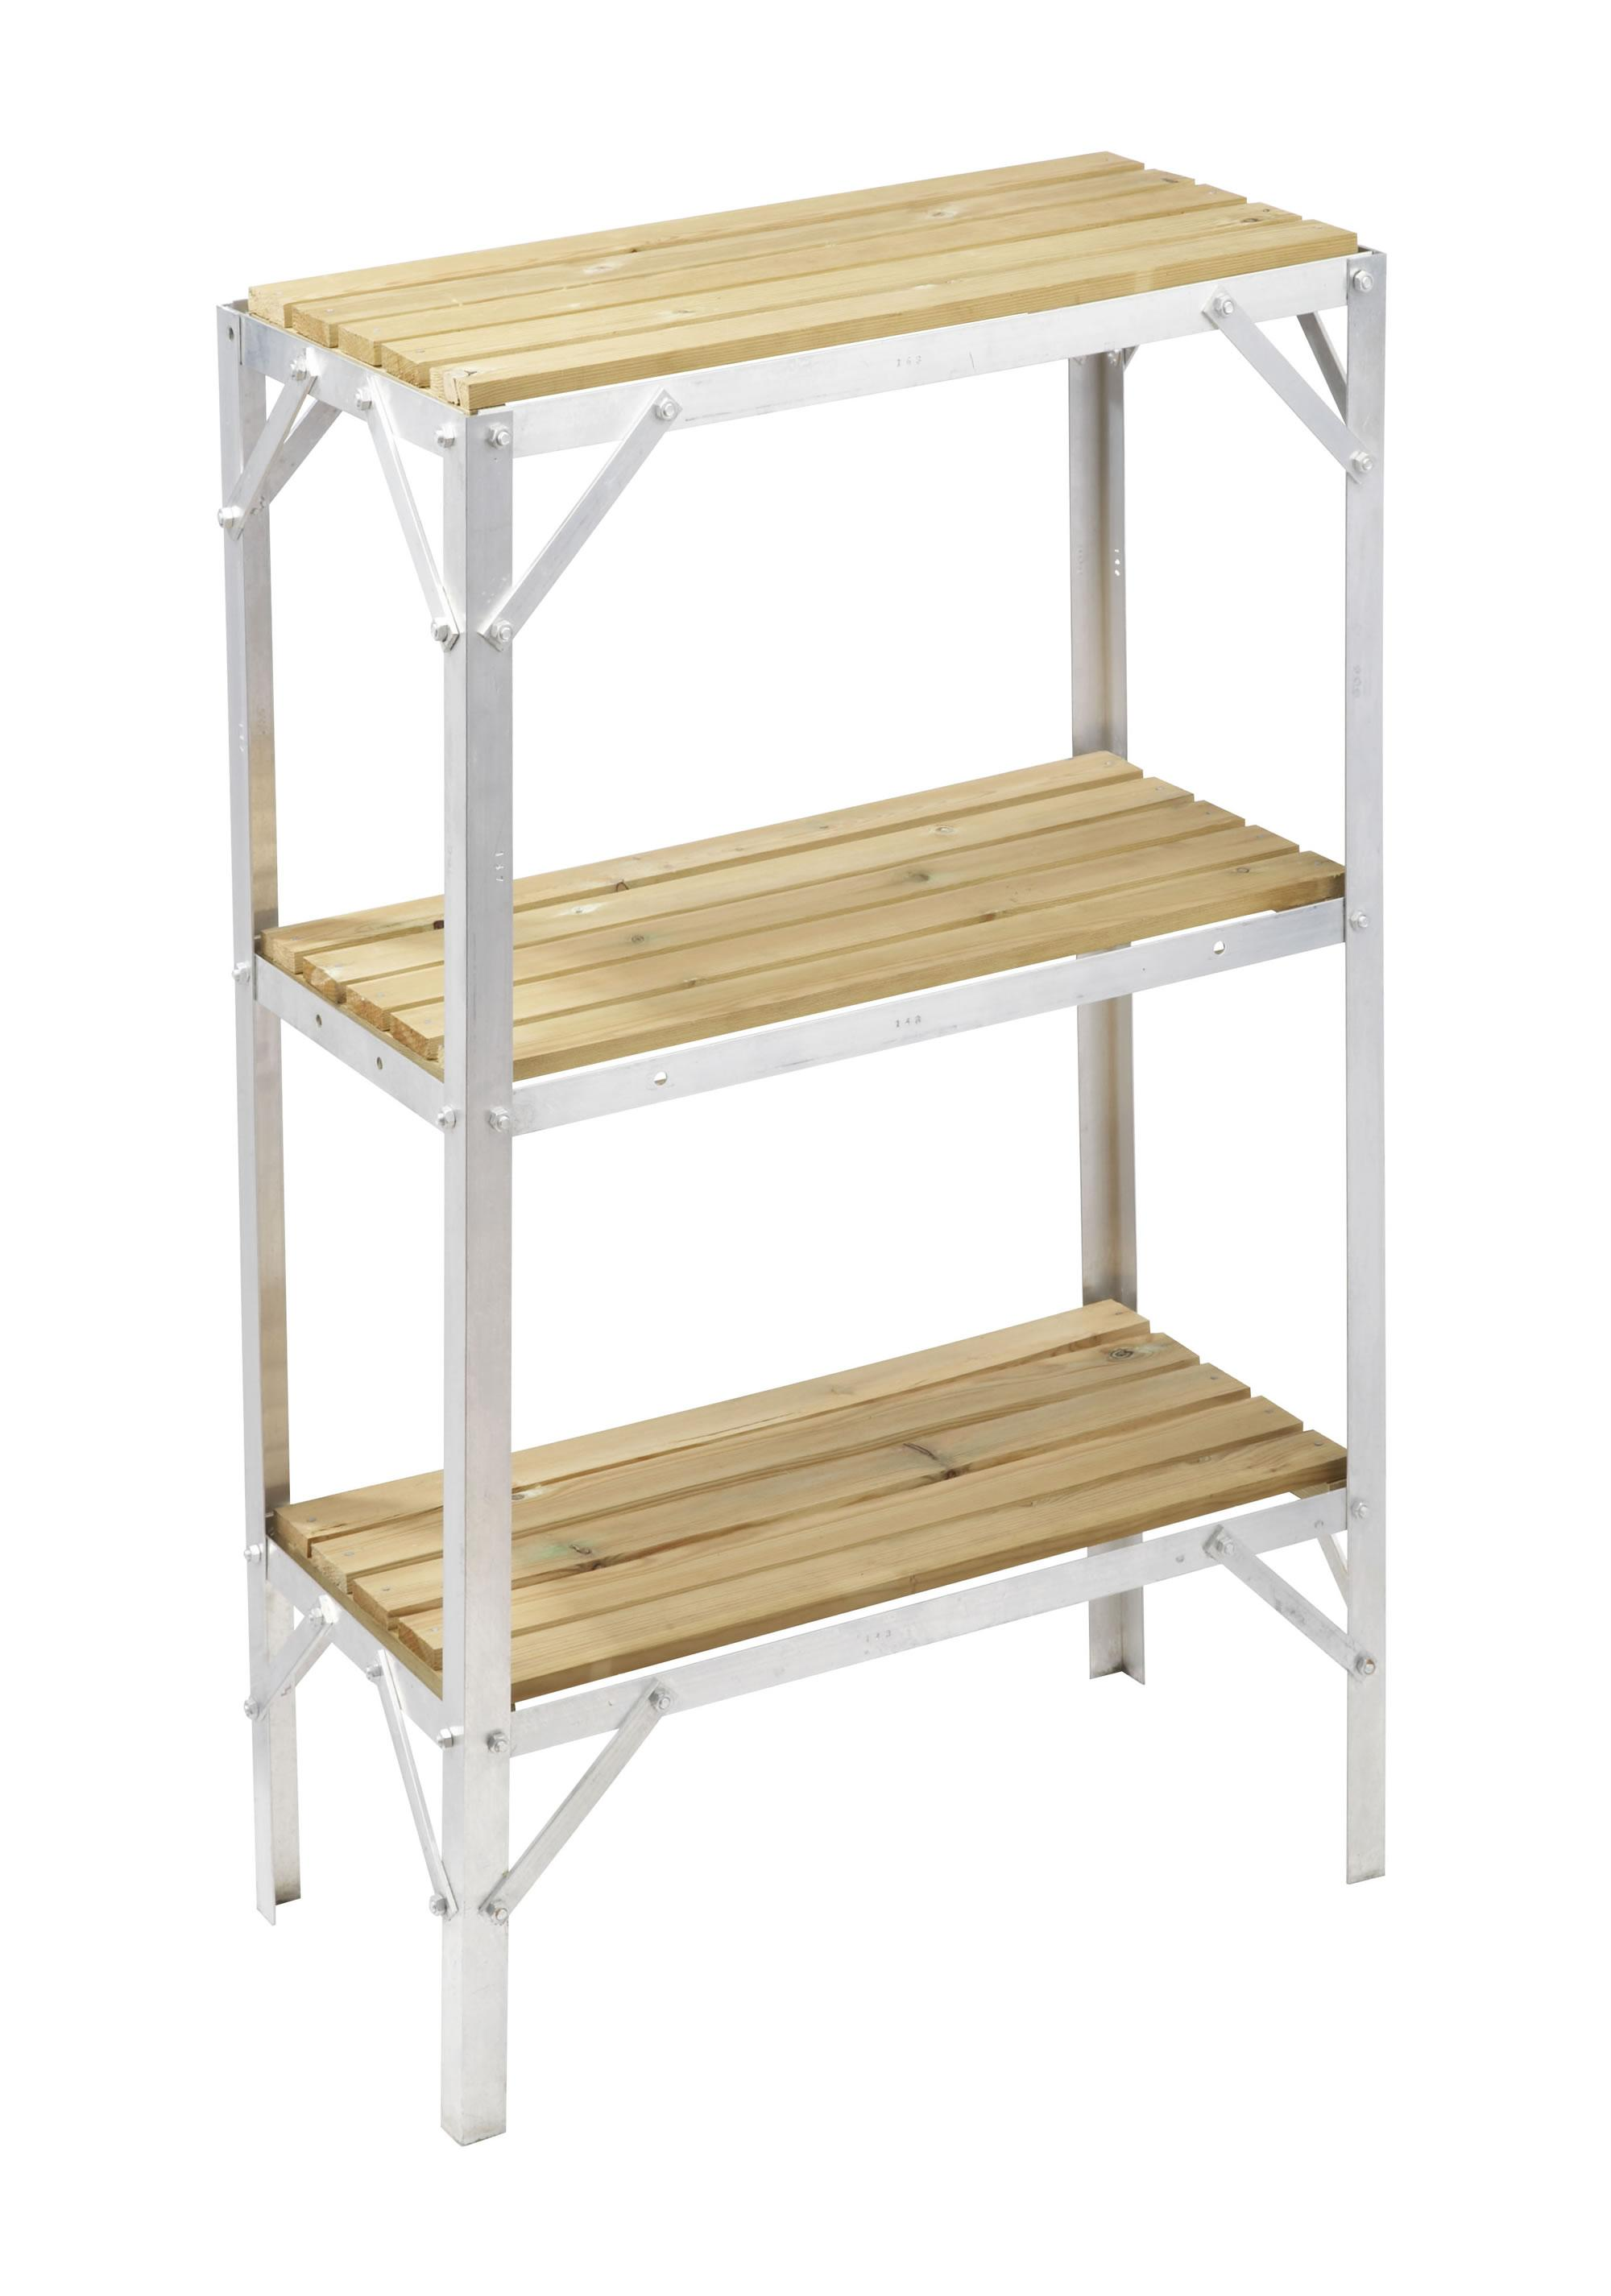 Greenhouse staging bench wooden three tier 1ft wide x - Wooden staging for greenhouse ...